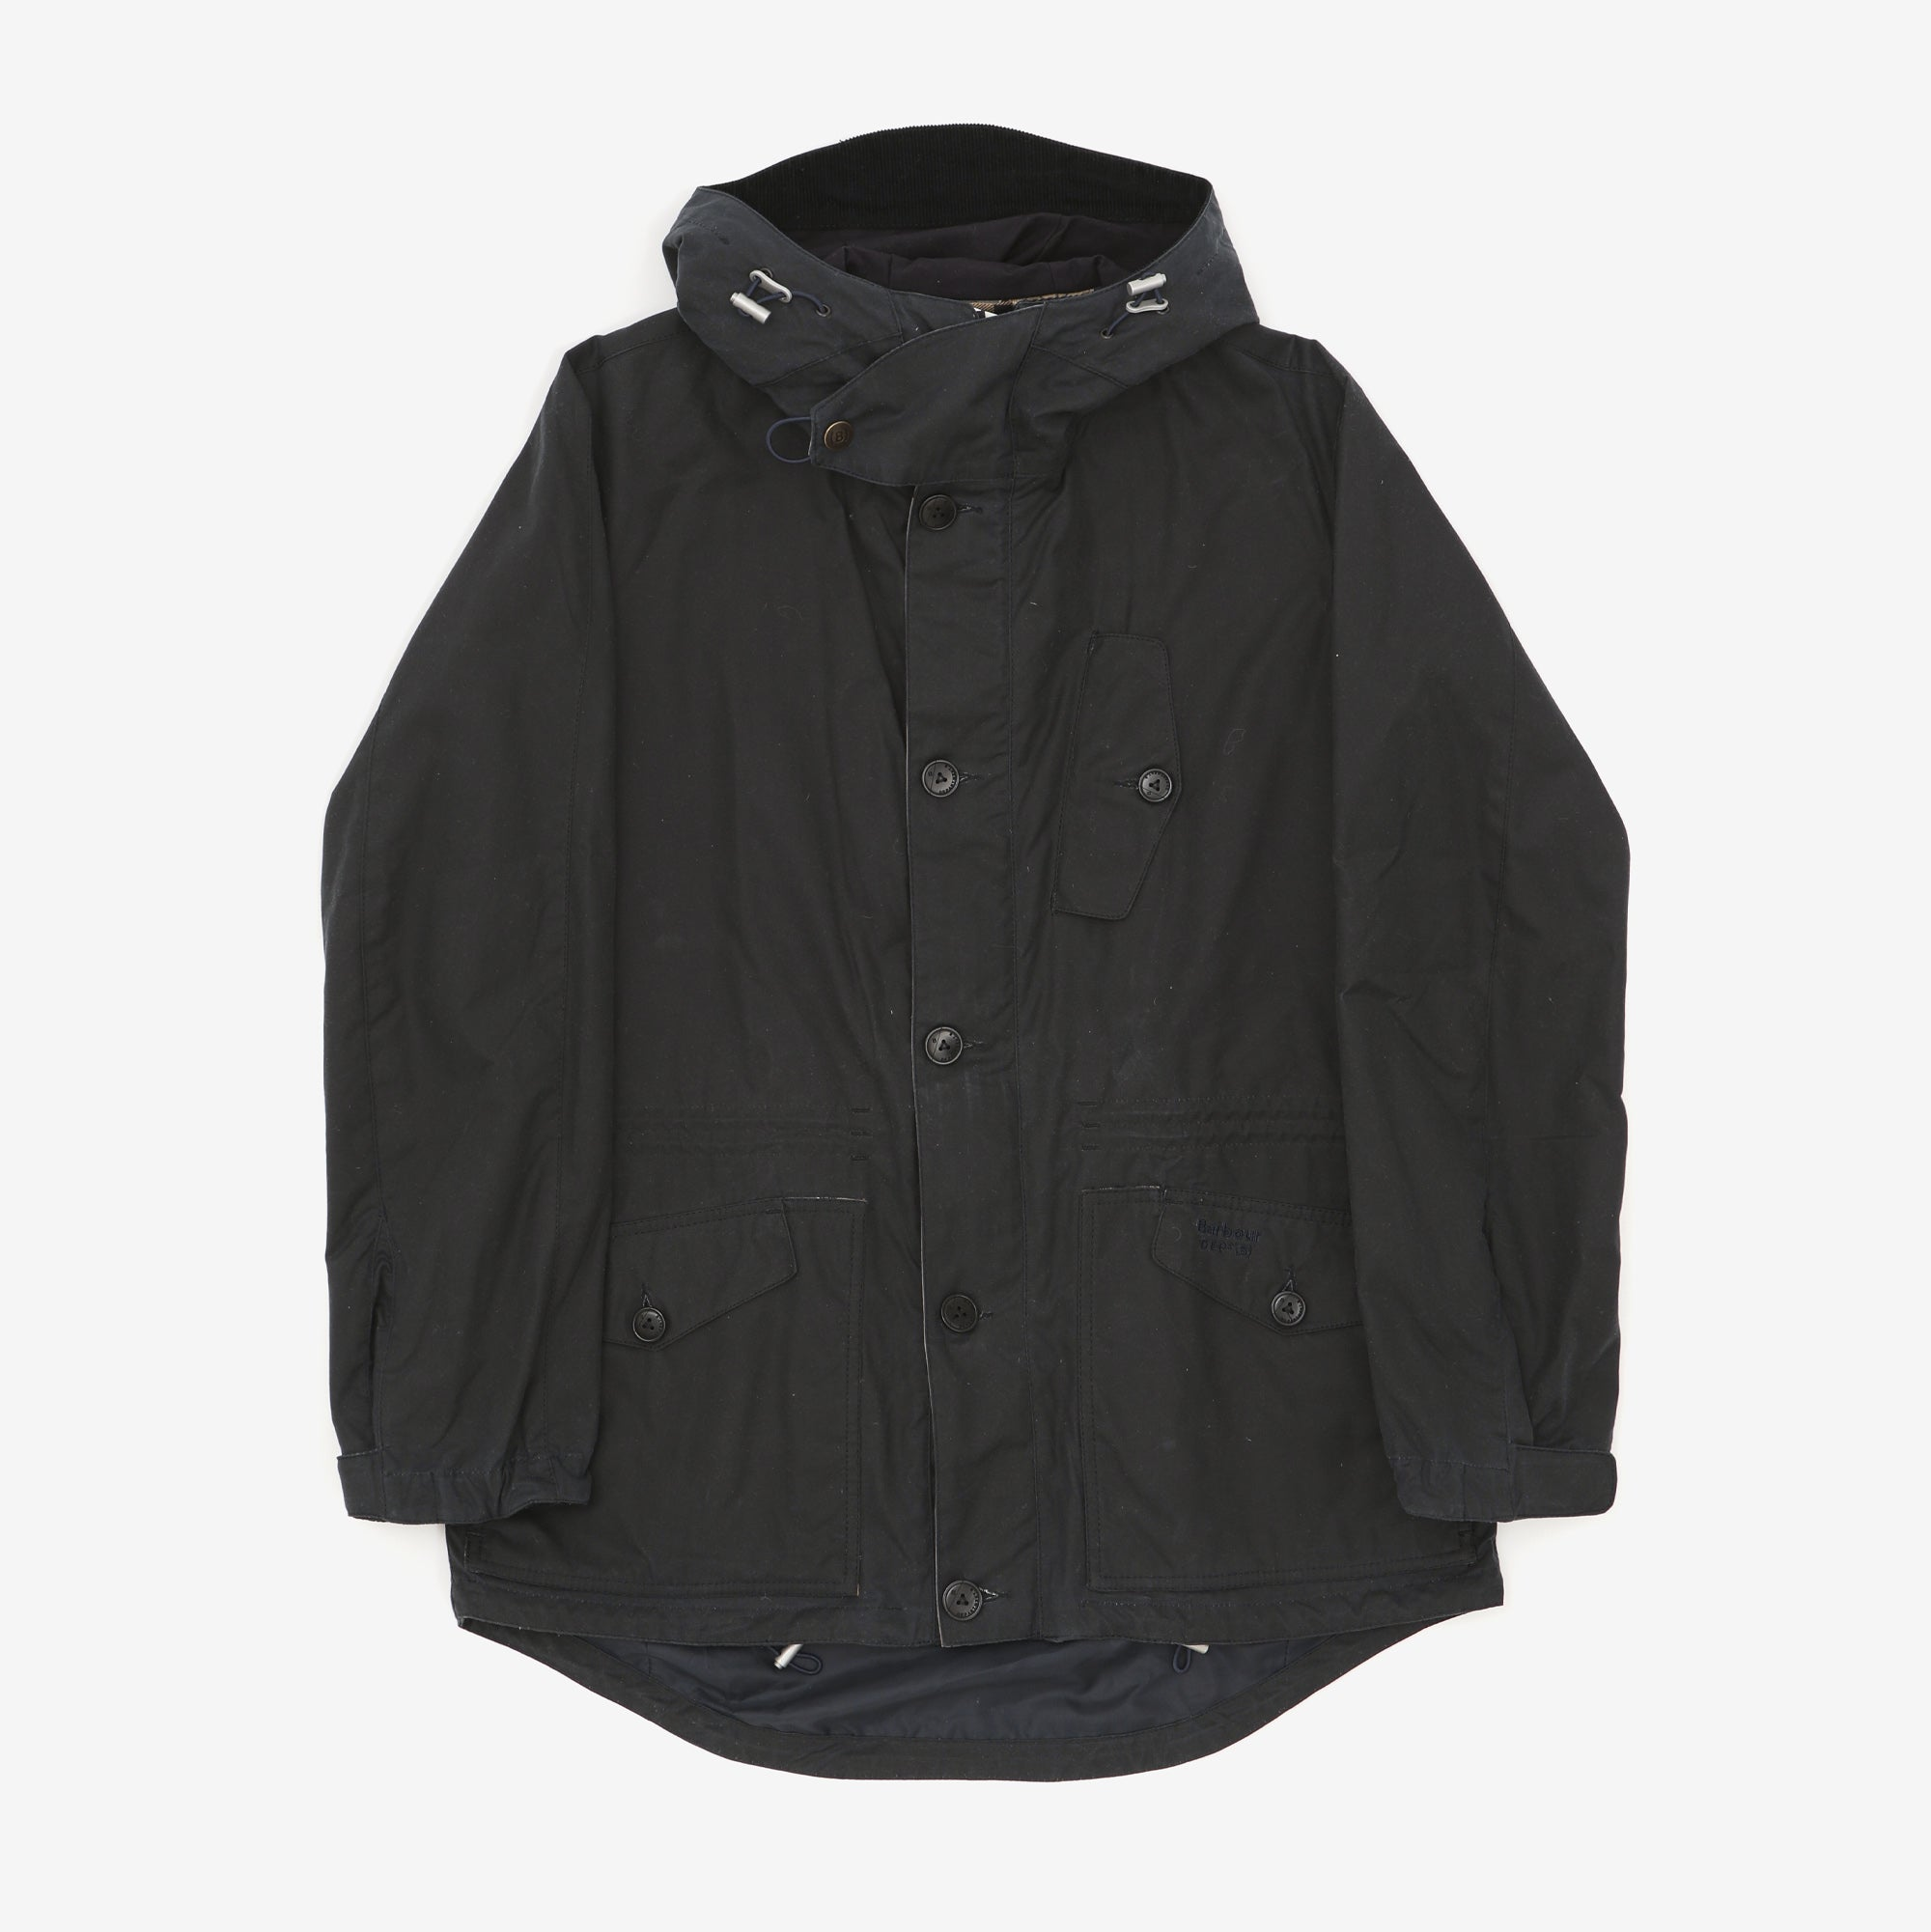 Barbour Debt (B) Technical Parka